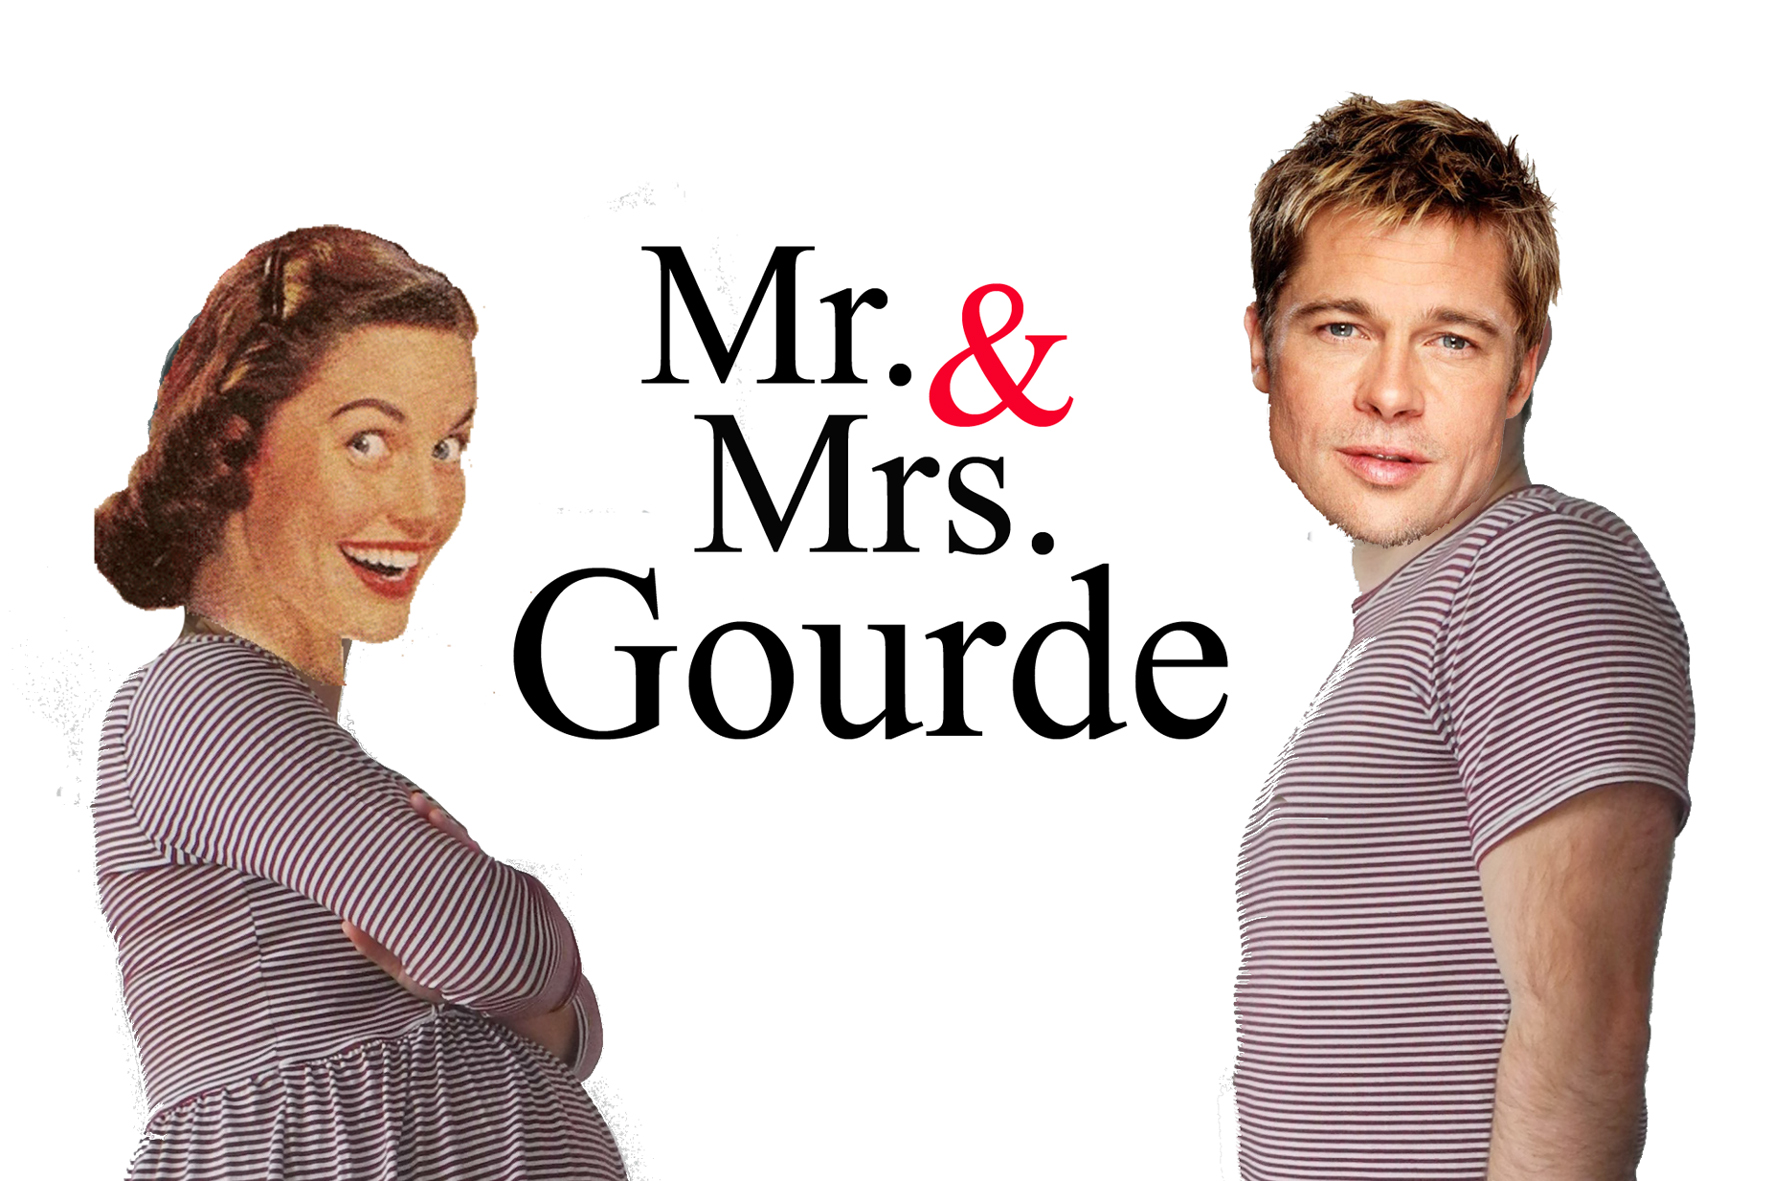 Mr. & Mrs. Gourde